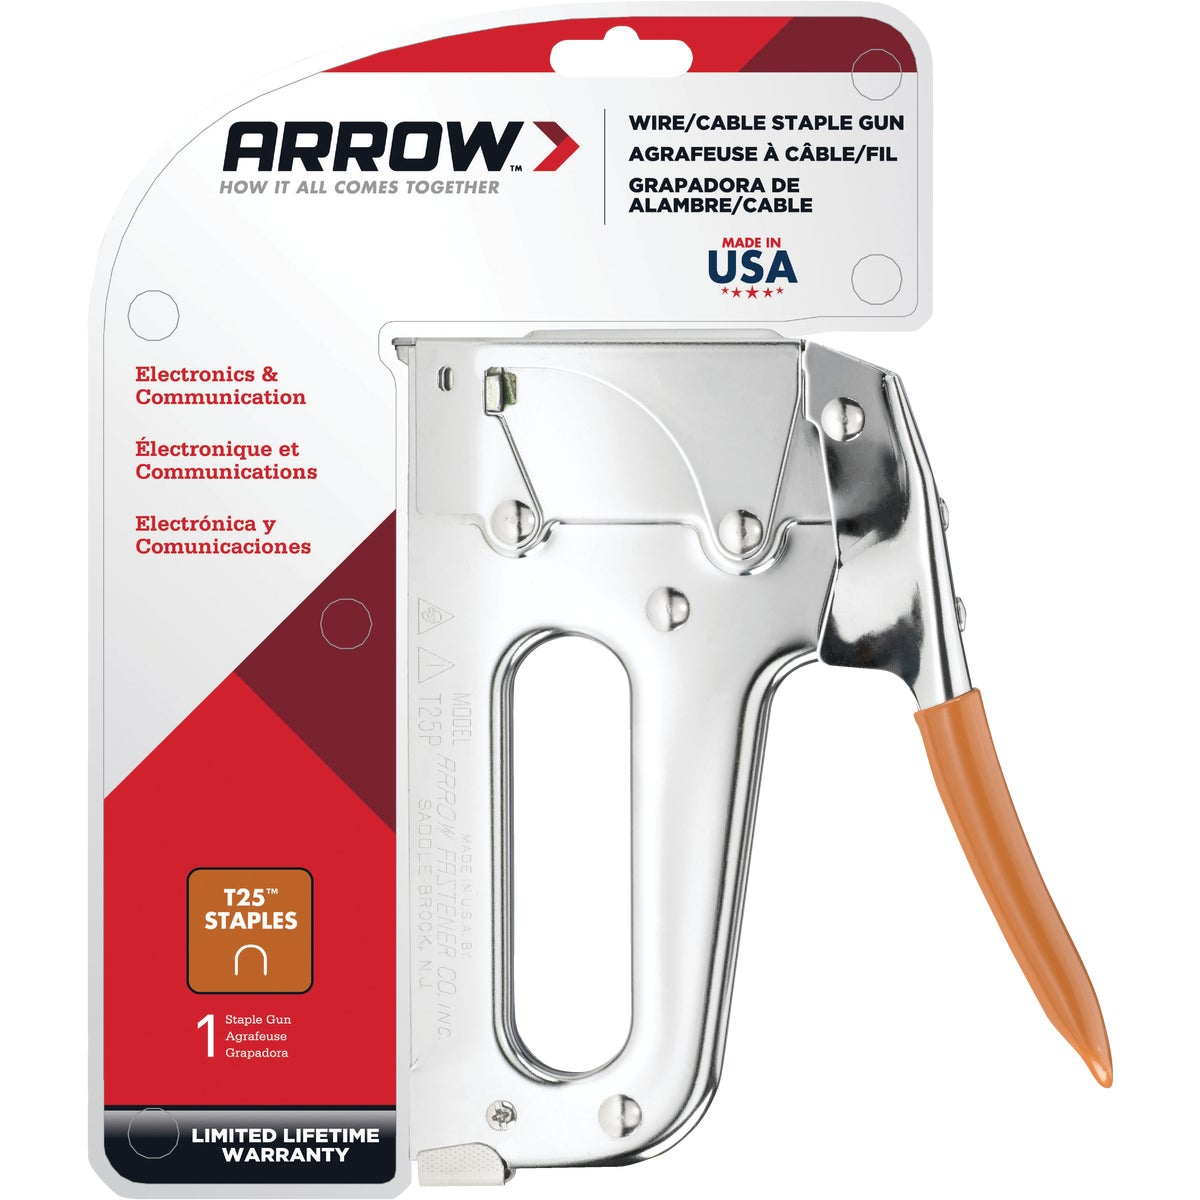 H/D CABLE STAPLE GUN - T25 by Arrow Fastener Co